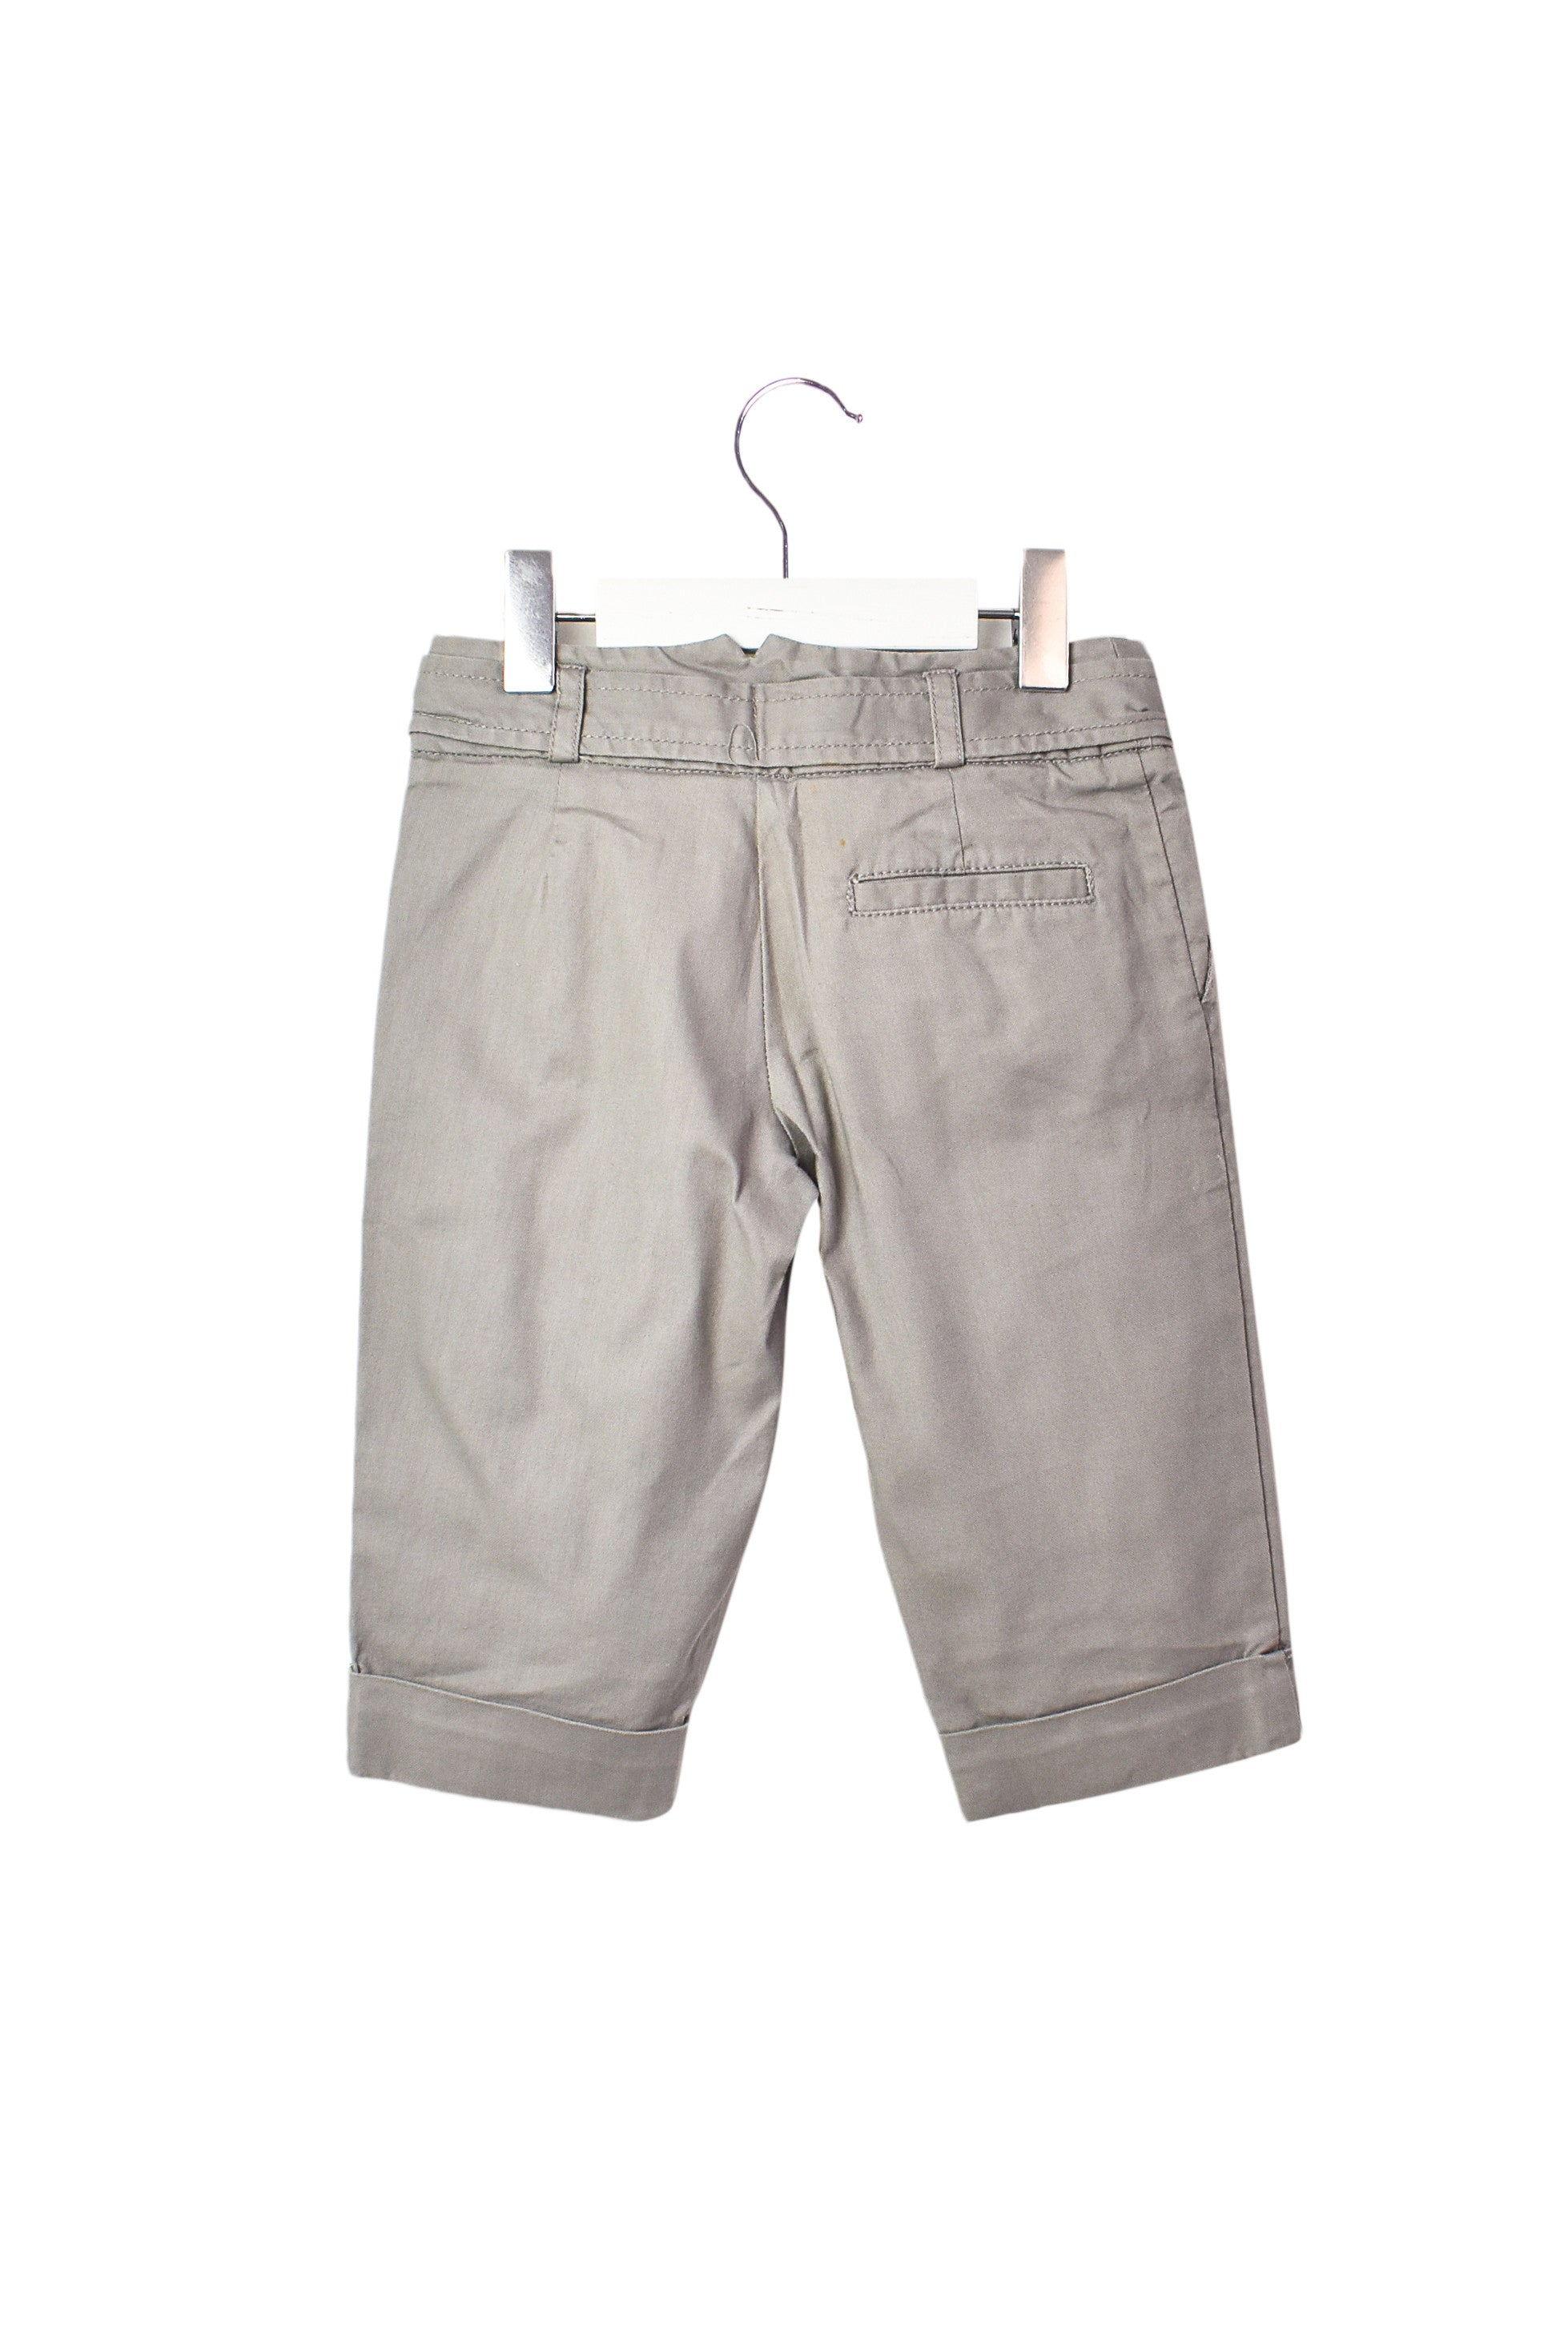 10005043 Jacadi Kids~ Pants 2T, Jacadi Retykle | Online Baby & Kids Clothing Hong Kong